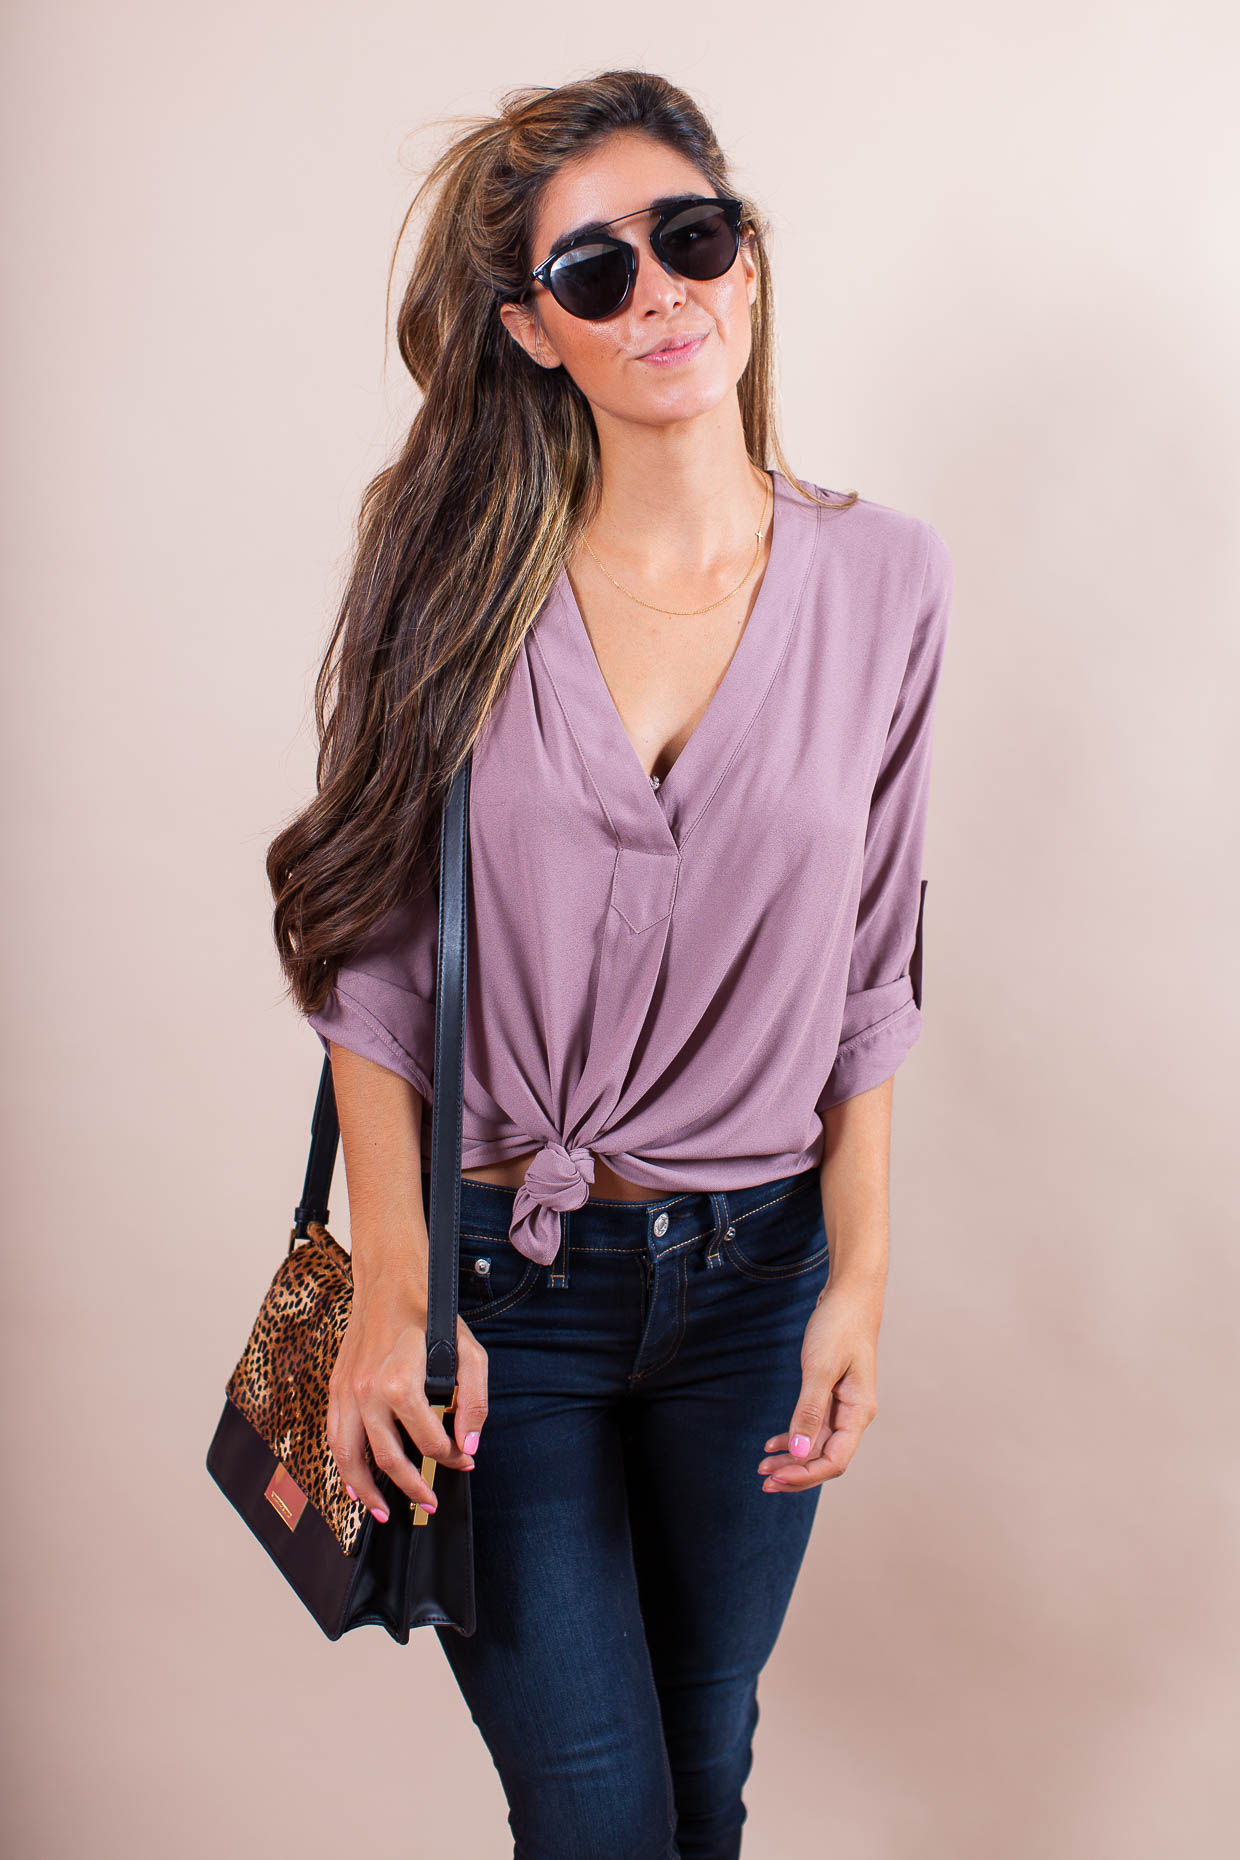 The Darling Detail is wearing a Lush V-Neck Crepe Blouse with Rag & Bone Skinny Jeans, Dior 'So Real' 48mm Sunglasses, and the Vince Camuto 'Abril' Leather Shoulder Bag.